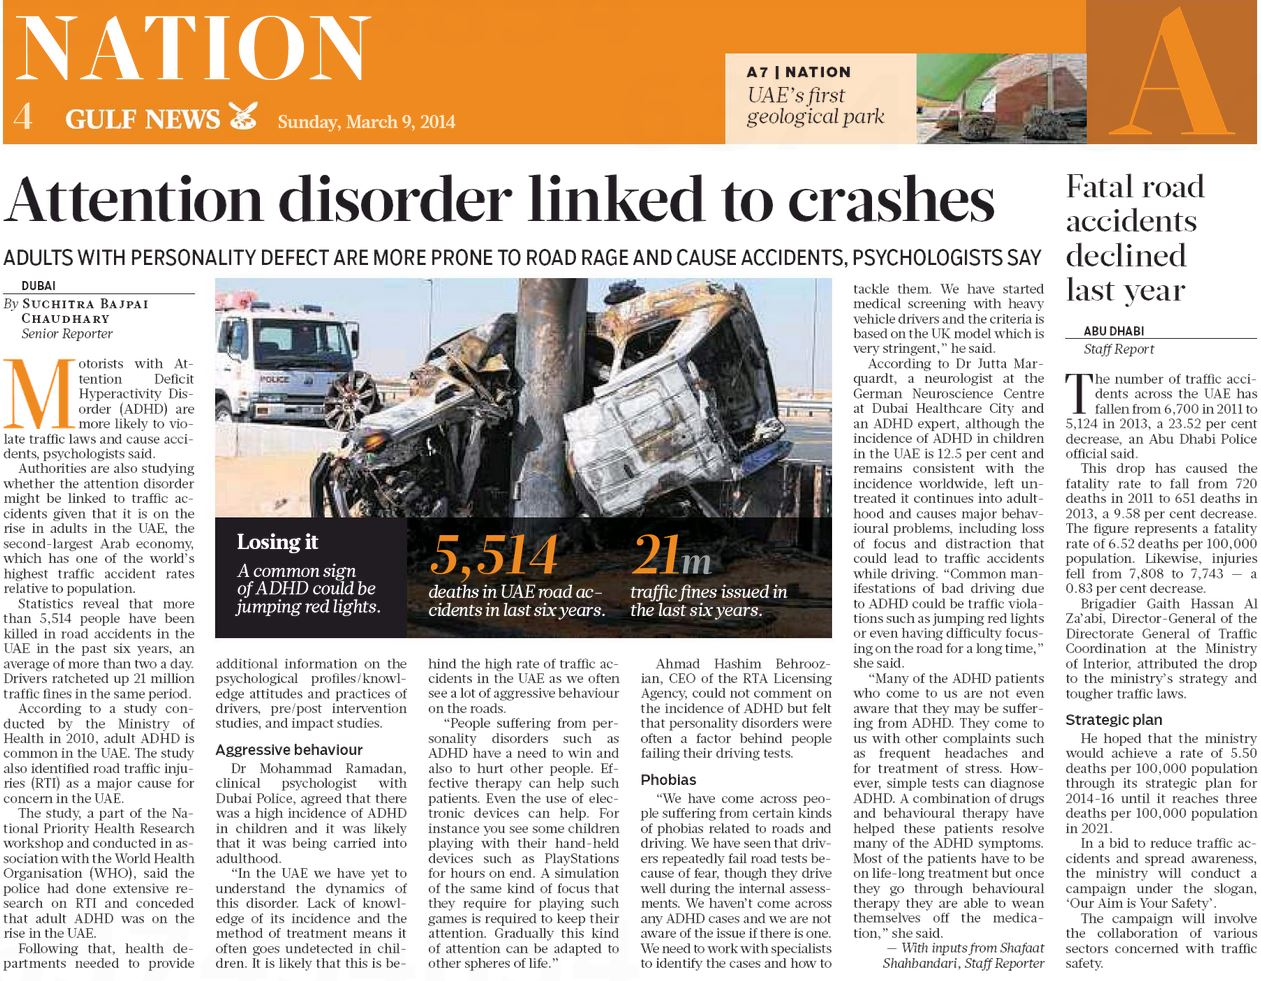 Gulf News: Attention disorder linked to crashes